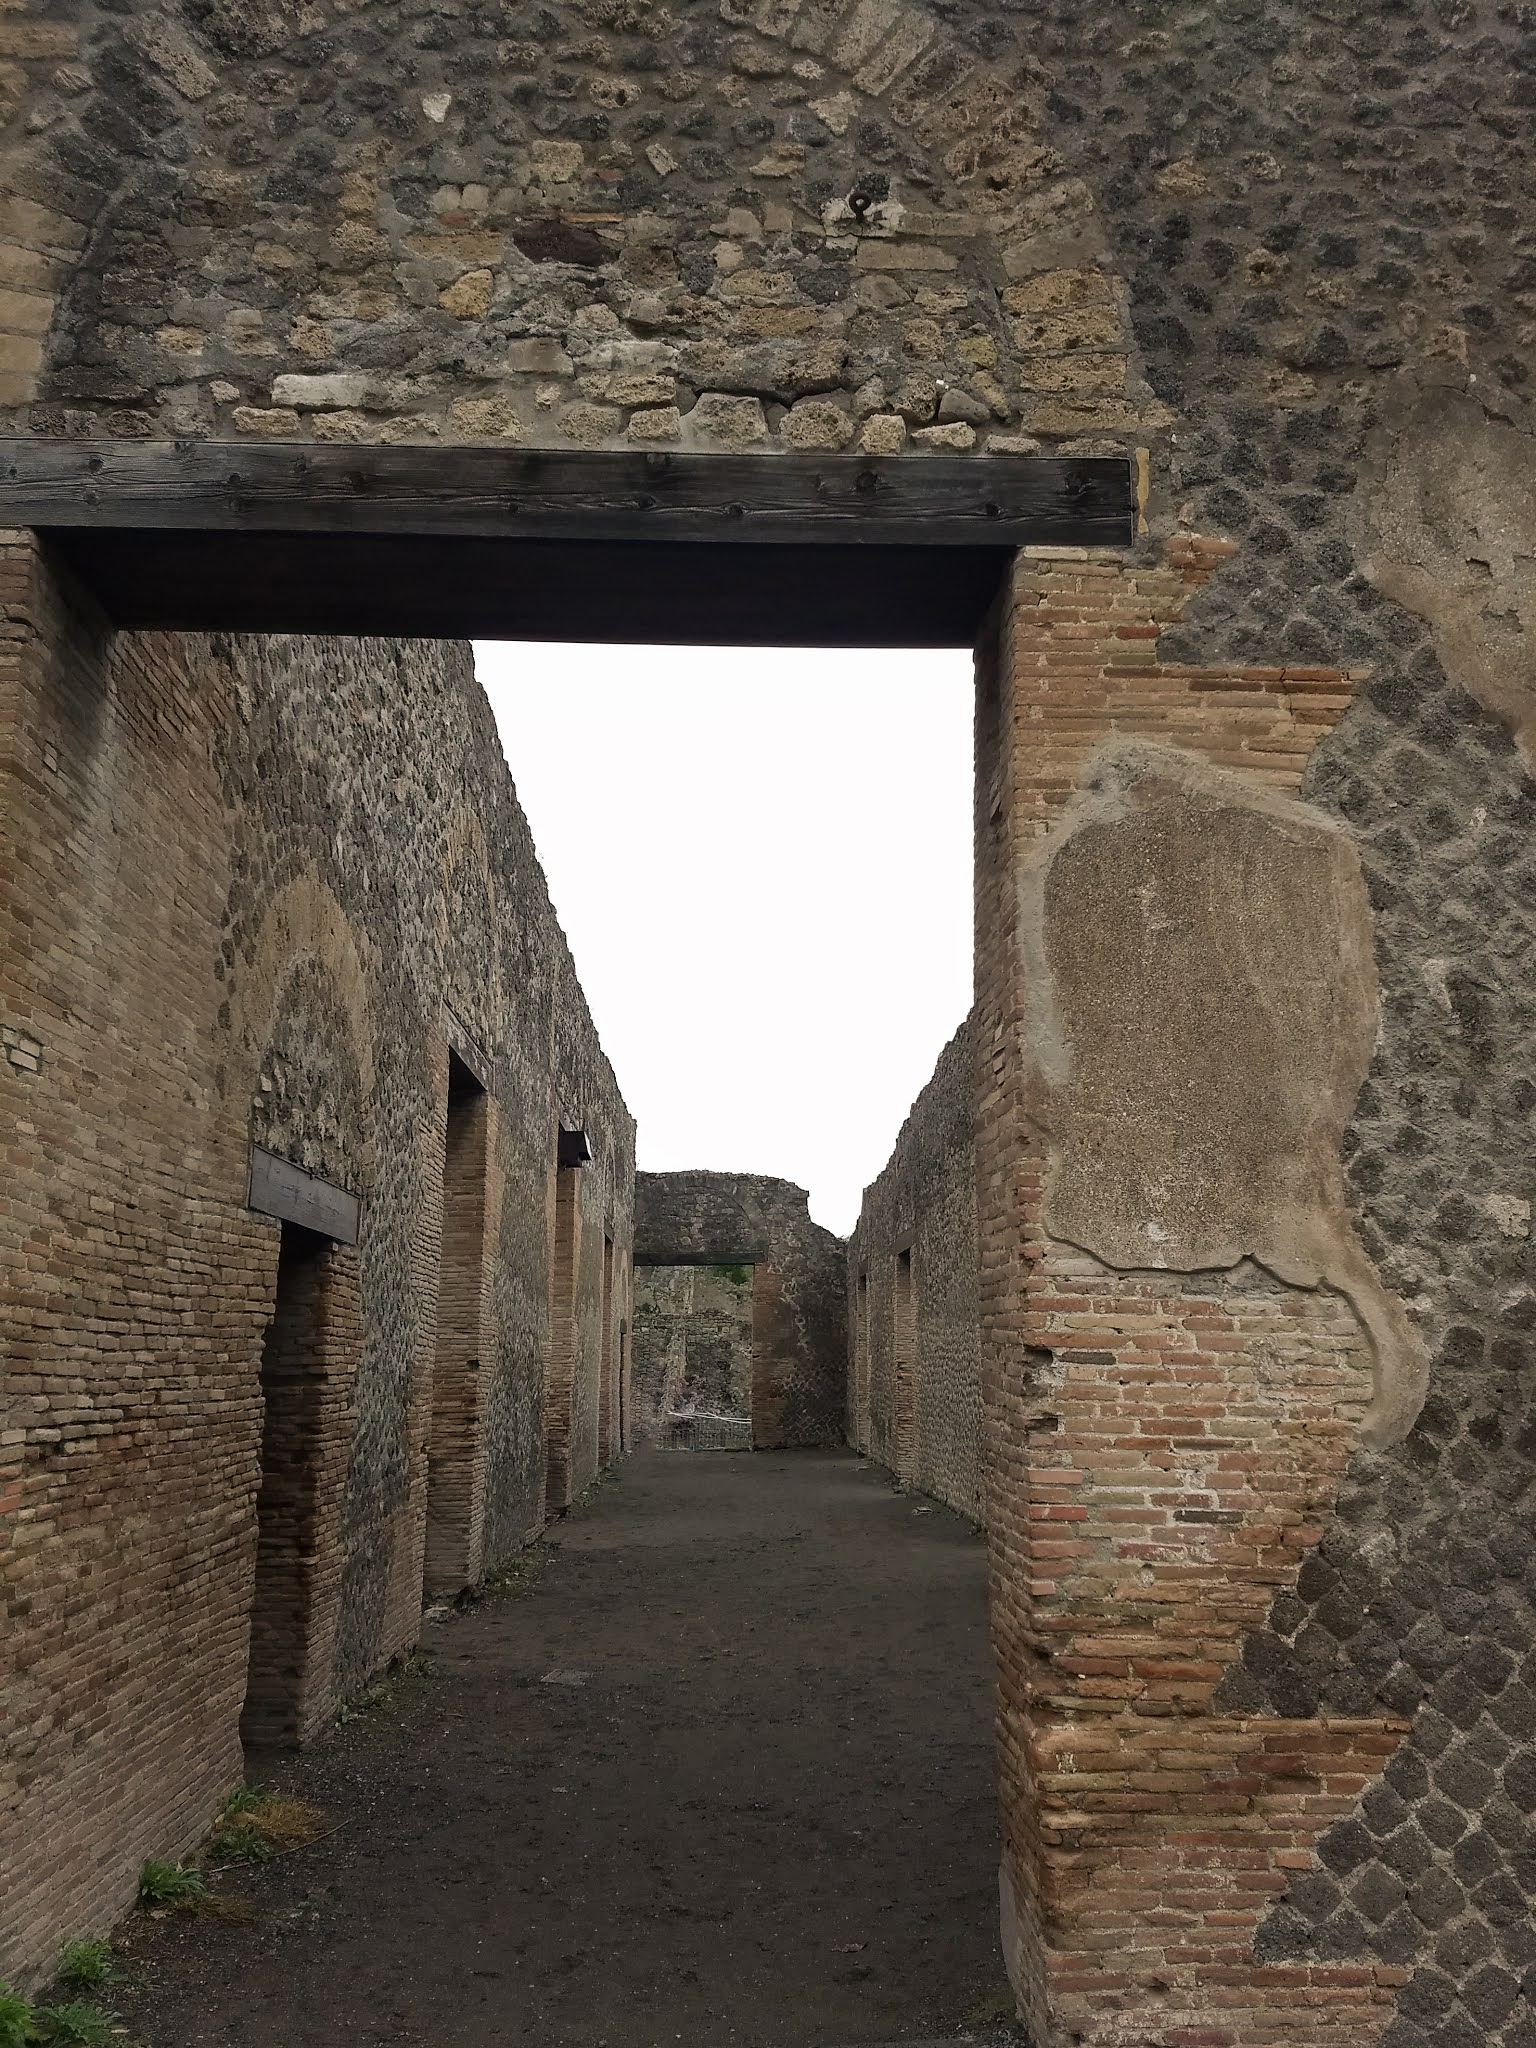 Close up of doorway architecture in the ancient city of Pompeii.